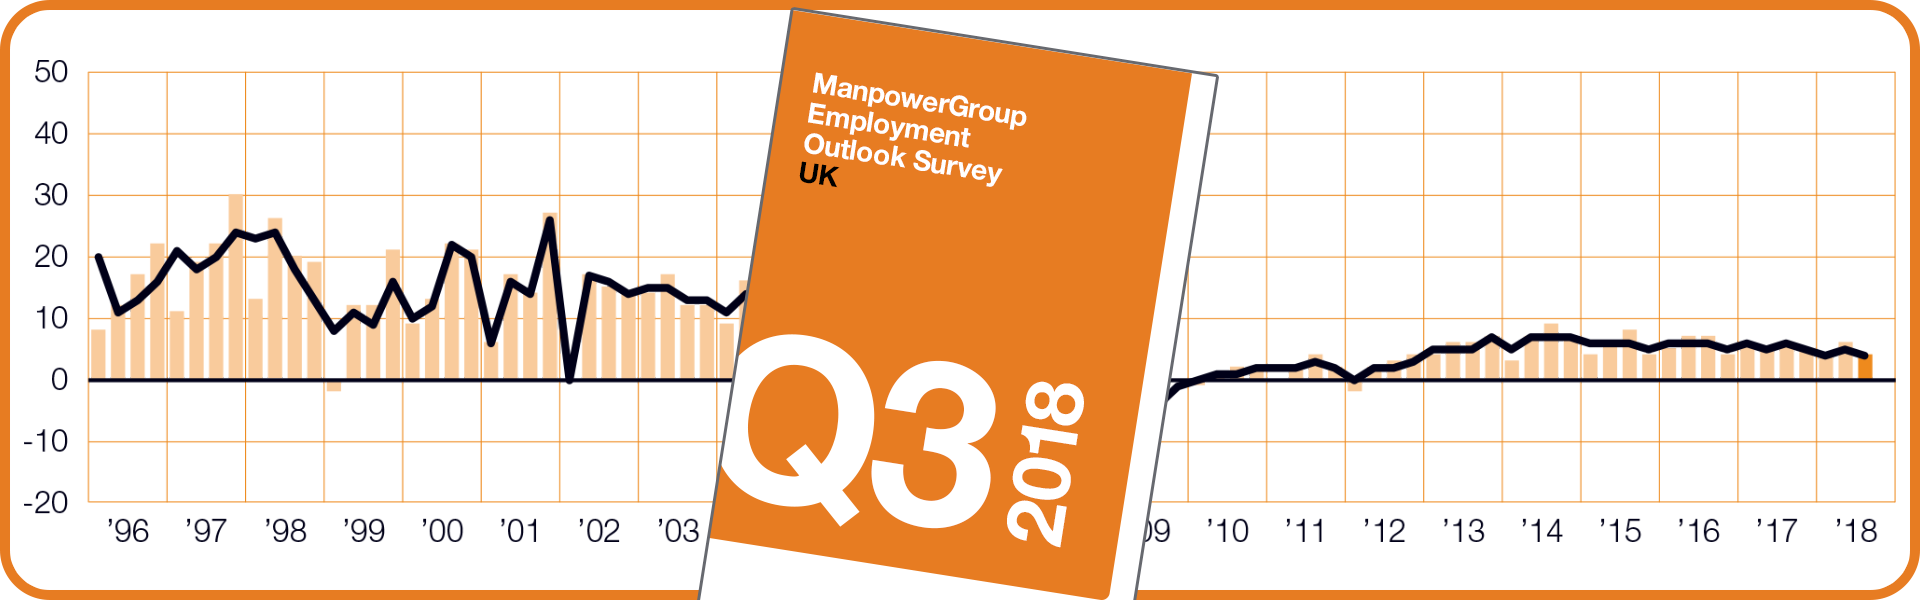 ManpowerGroup Employment Outlook Survey - Q3 2018